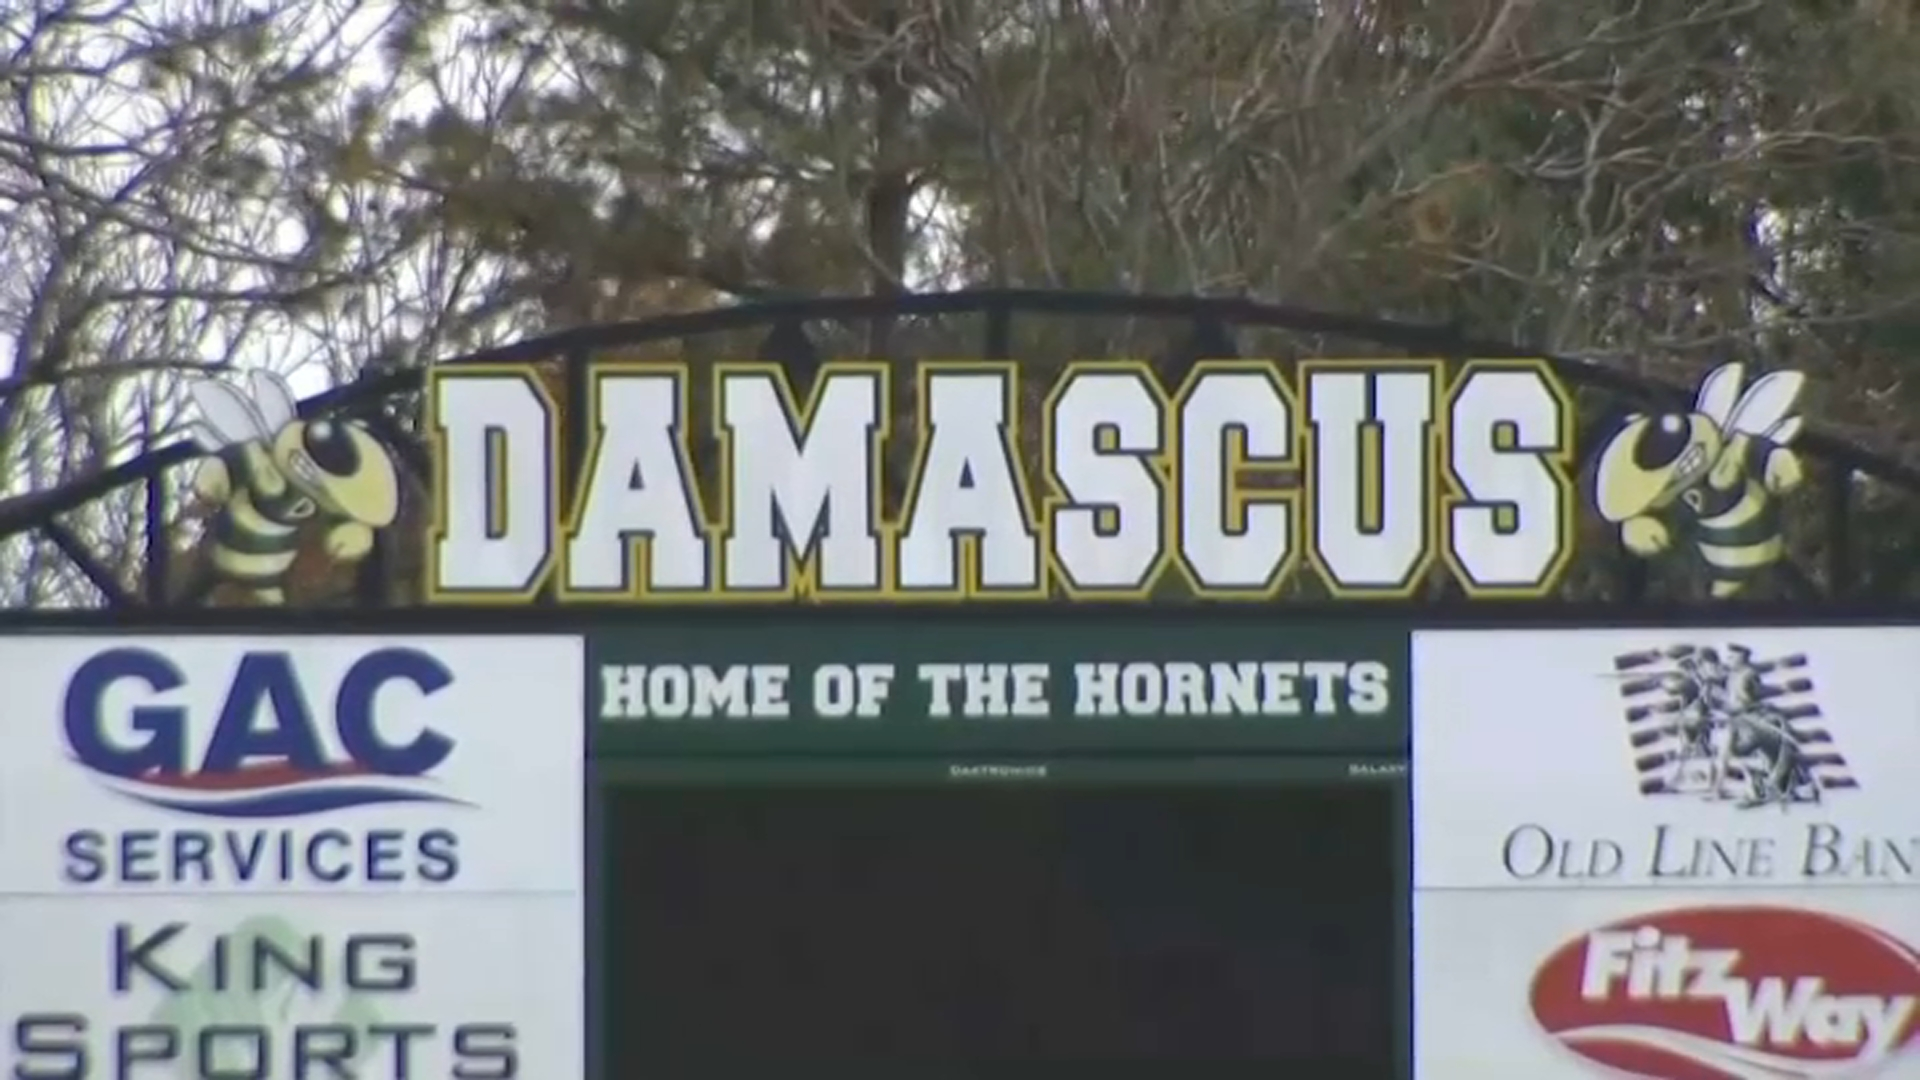 Review of Damascus HS Assault Finds Hazing Not Widespread